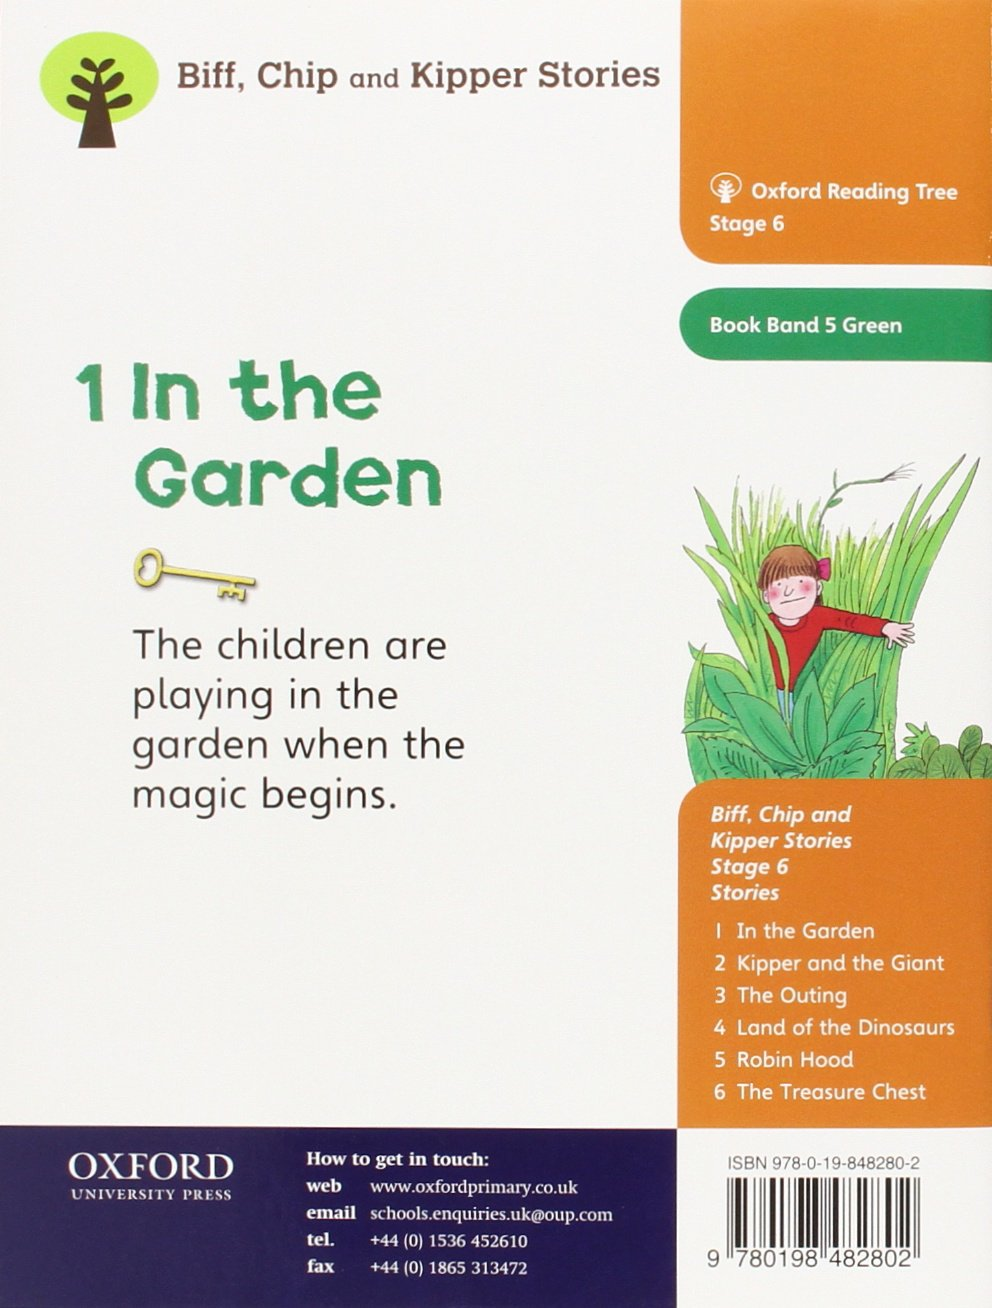 Oxford reading tree level 6 stories in the garden roderick hunt oxford reading tree level 6 stories in the garden roderick hunt 9780198482802 amazon books fandeluxe Choice Image